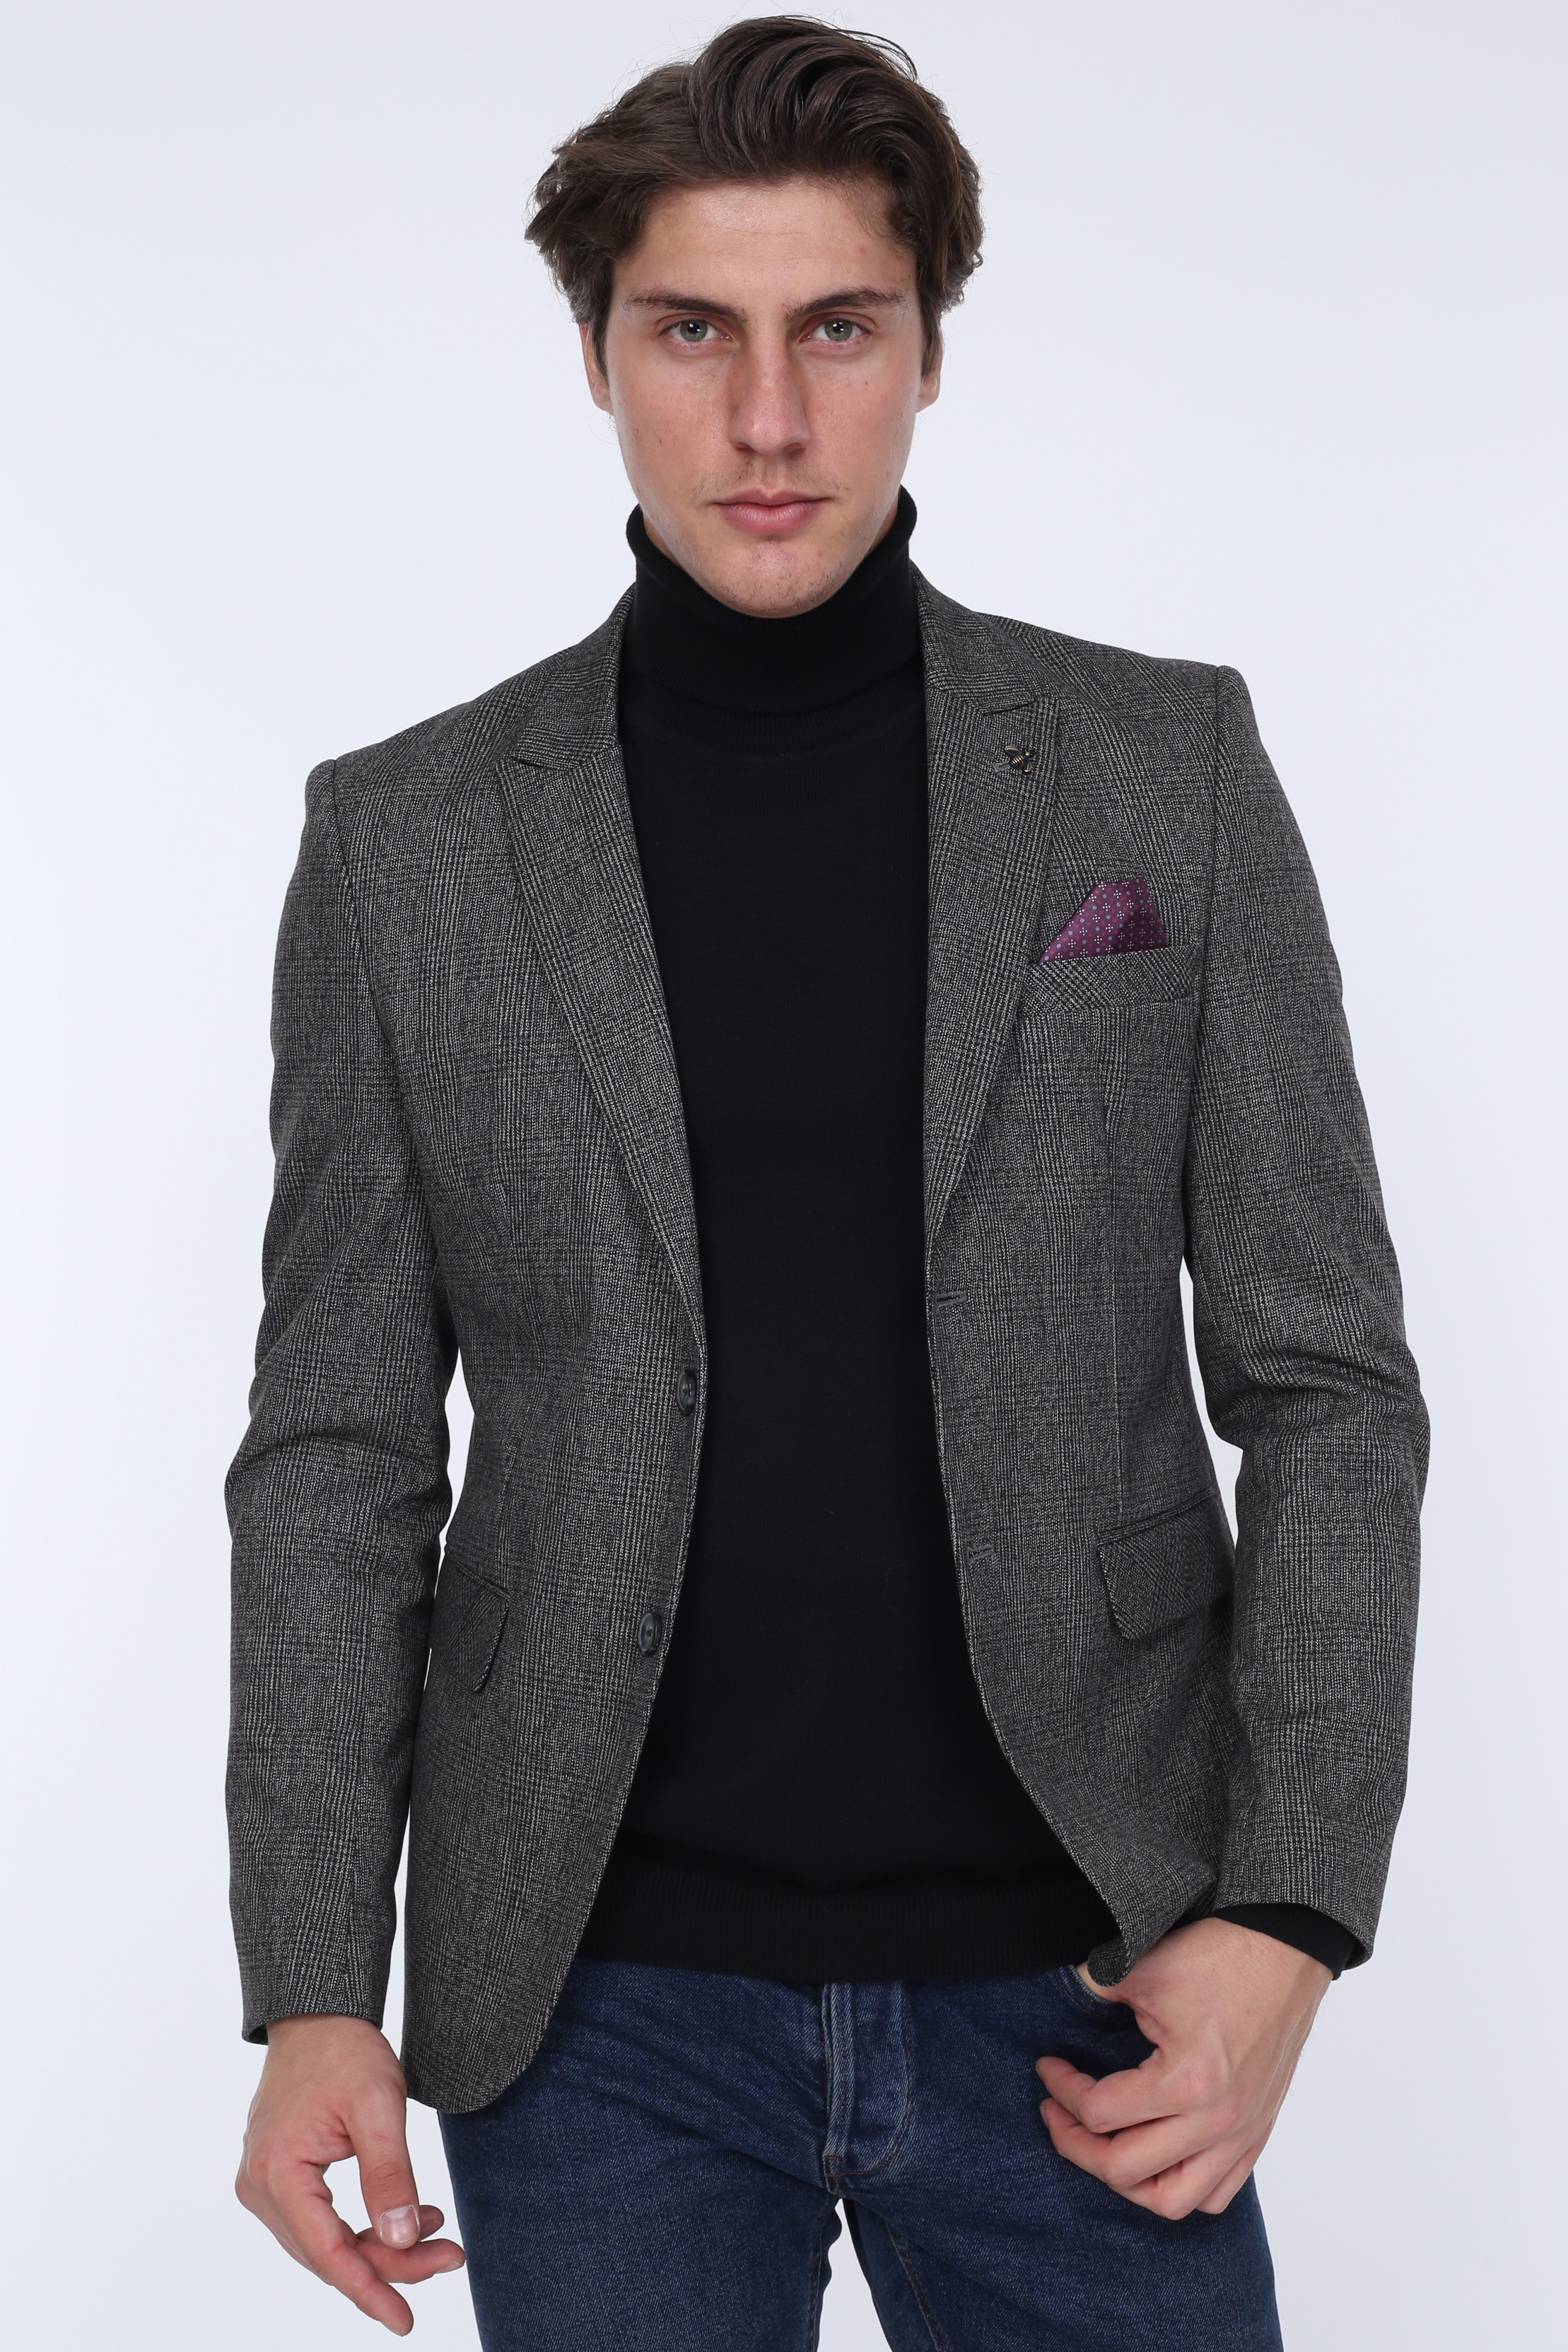 MENS BLAZER JACKET Slim-Fit Made-In-Turkey for European-Size 01231-ANTHRACITE St. 01231-ANTHRACITE title=